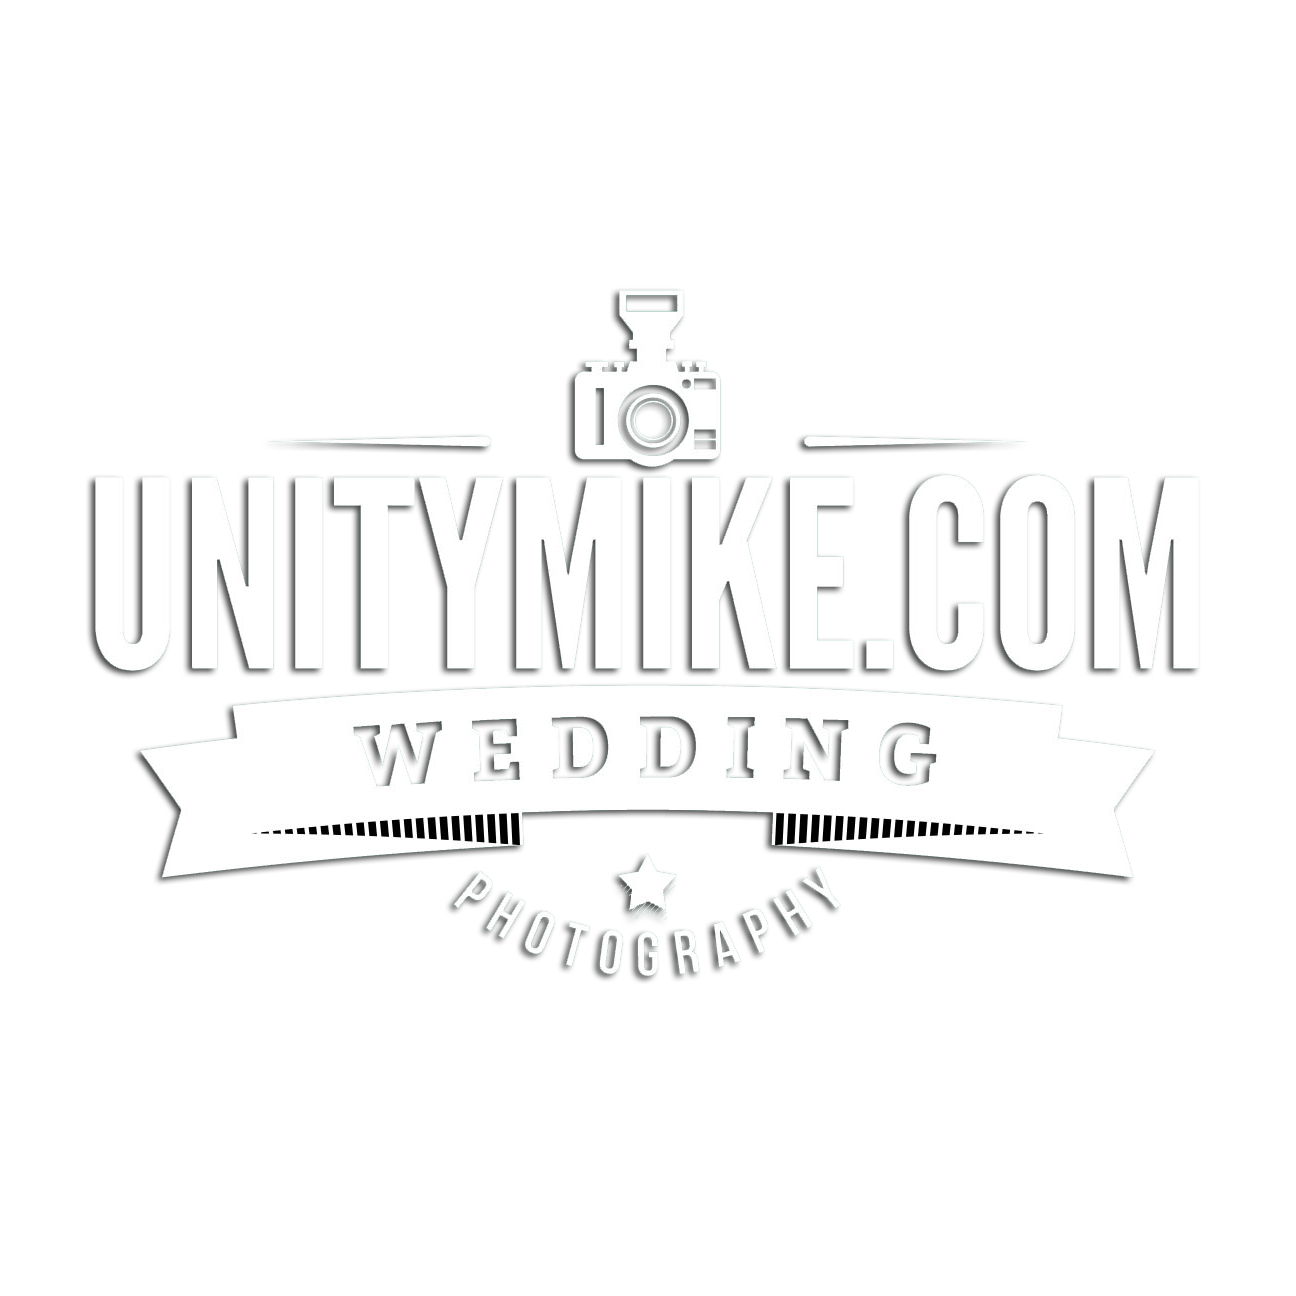 unitymike.com wedding photography